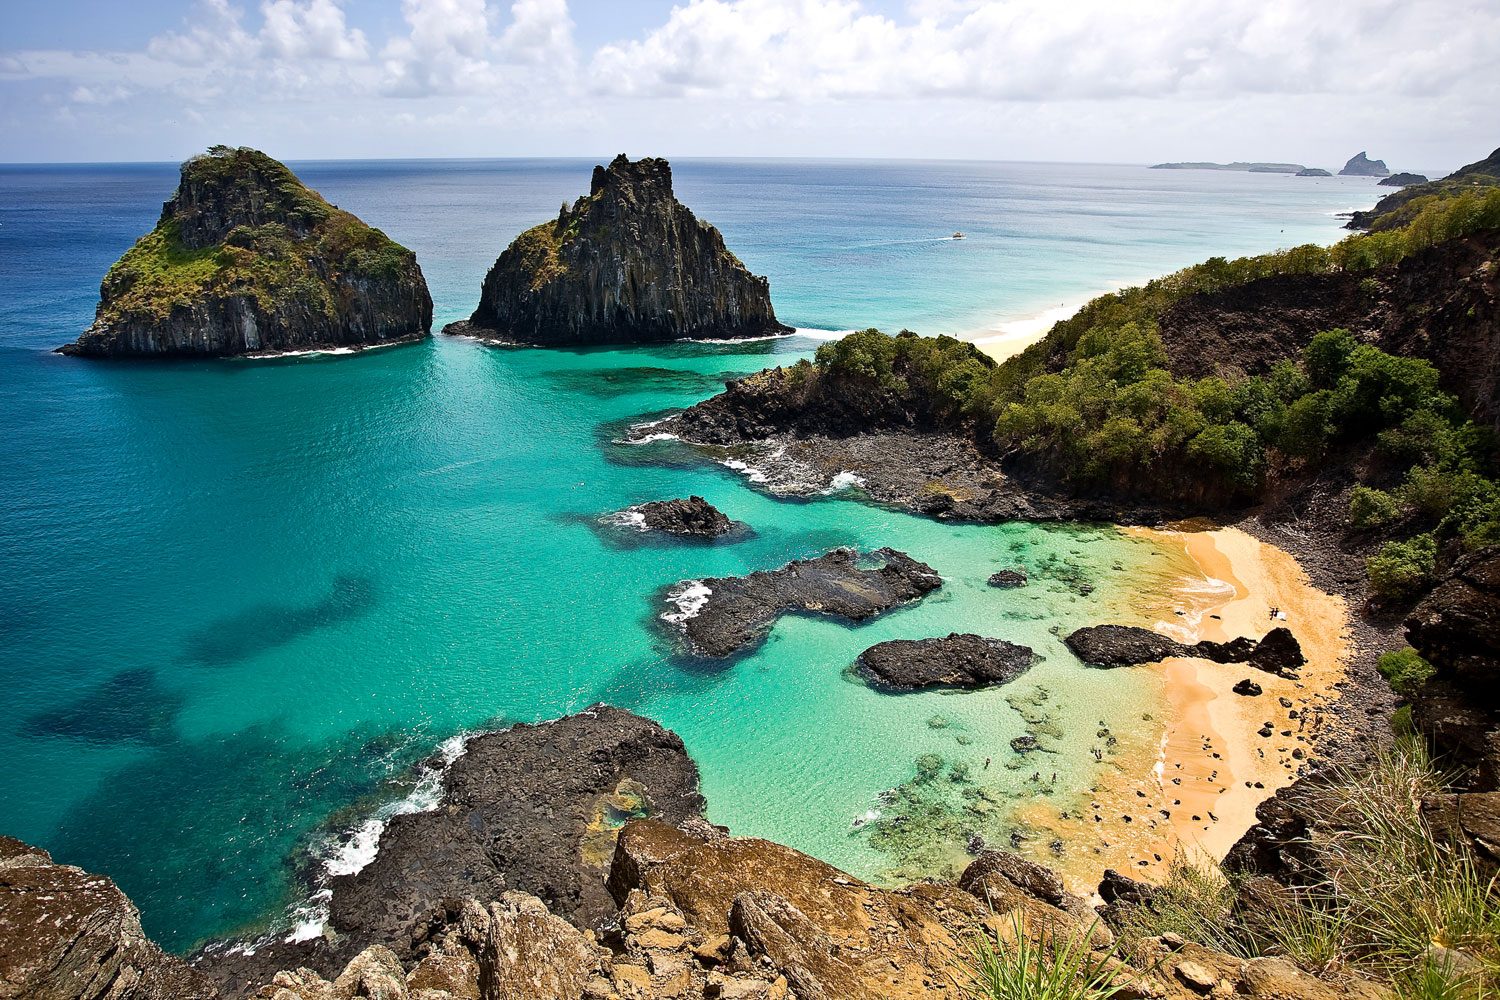 Fernando de Noronha, an archipelago of 21 islands about 200 miles off the Brazilian coast, is designated by UNESCO as a World Heritage Site and offers travelers stunning views of marine life.